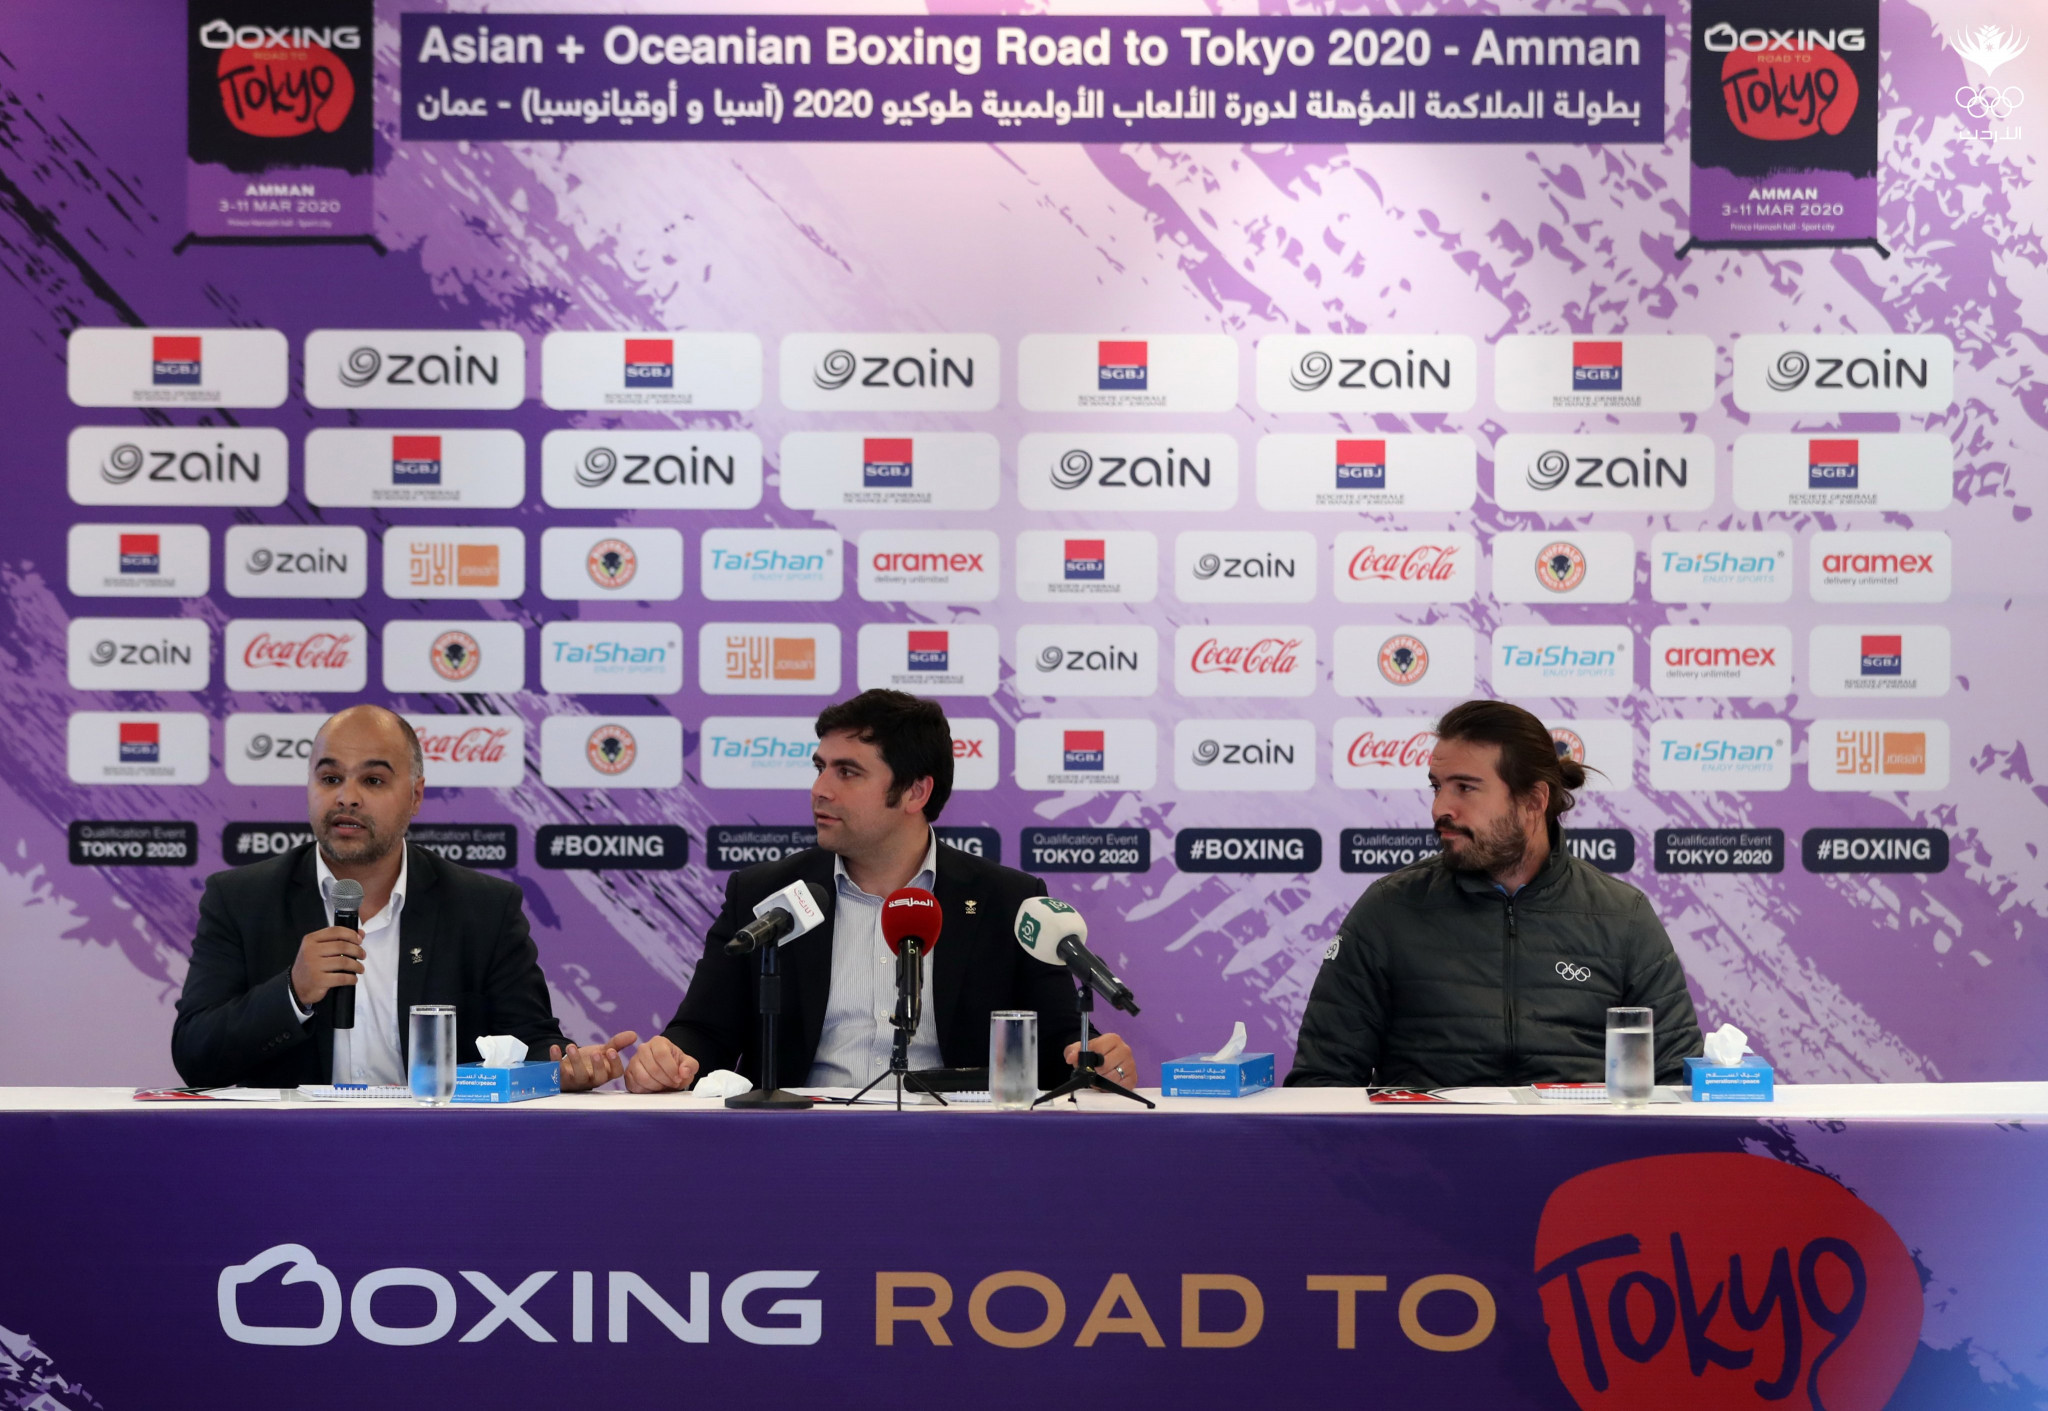 Sponsors sign-up to support rearranged Olympic boxing qualifier in Amman